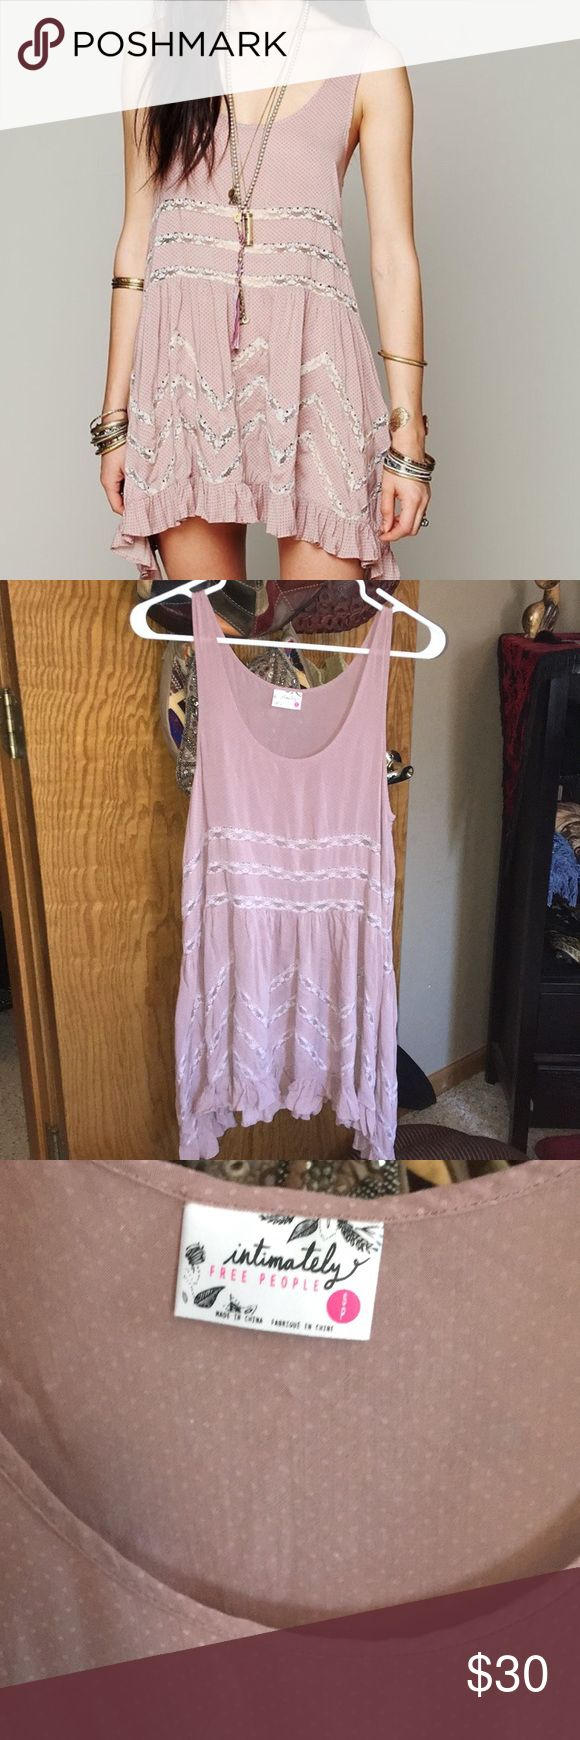 Free people voile and lace trapeze slip dress Dusty pink dress, one tiny flaw in fabric. Virtually impossible to see. Excellent condition. Free People Dresses Mini